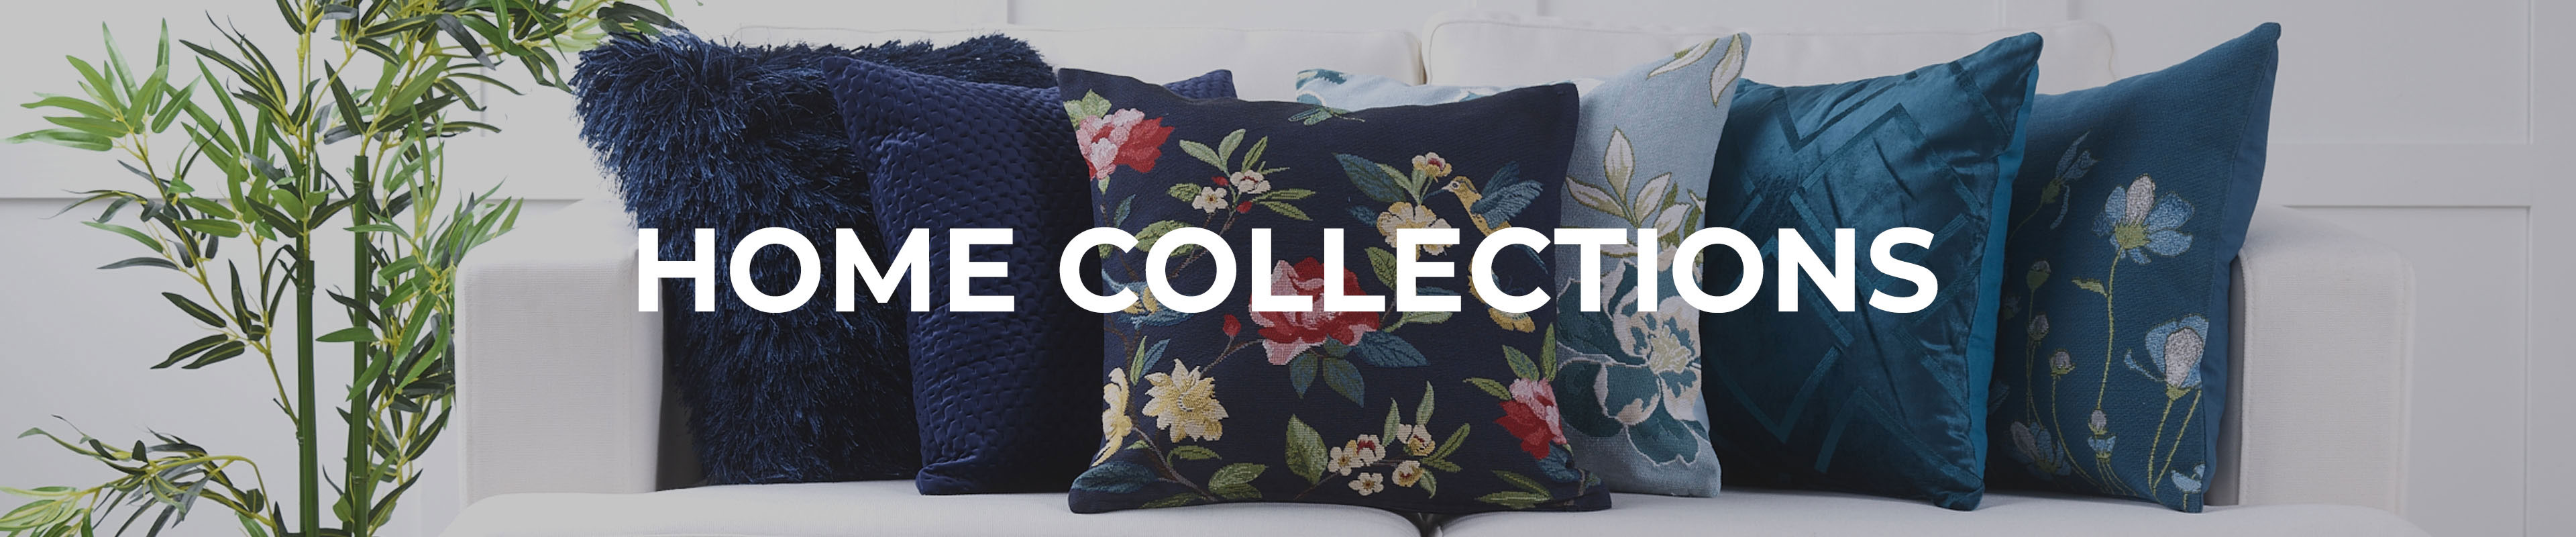 Shop Our Home Collections